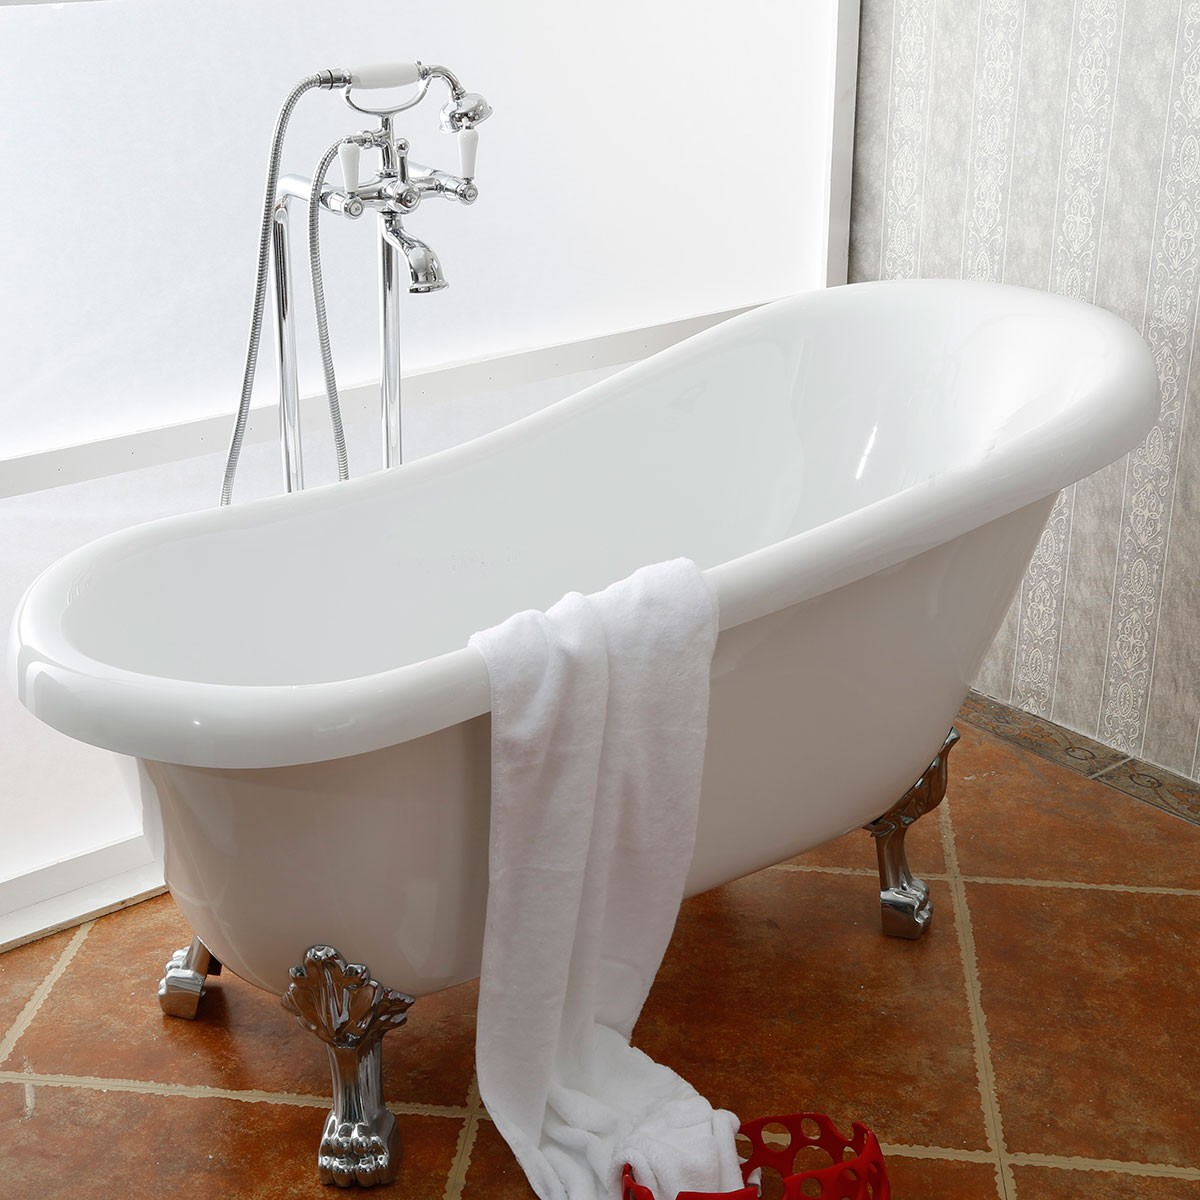 61 In Clawfoot Freestanding Bathtub - Acrylic Pure White (DK-PW-1912)